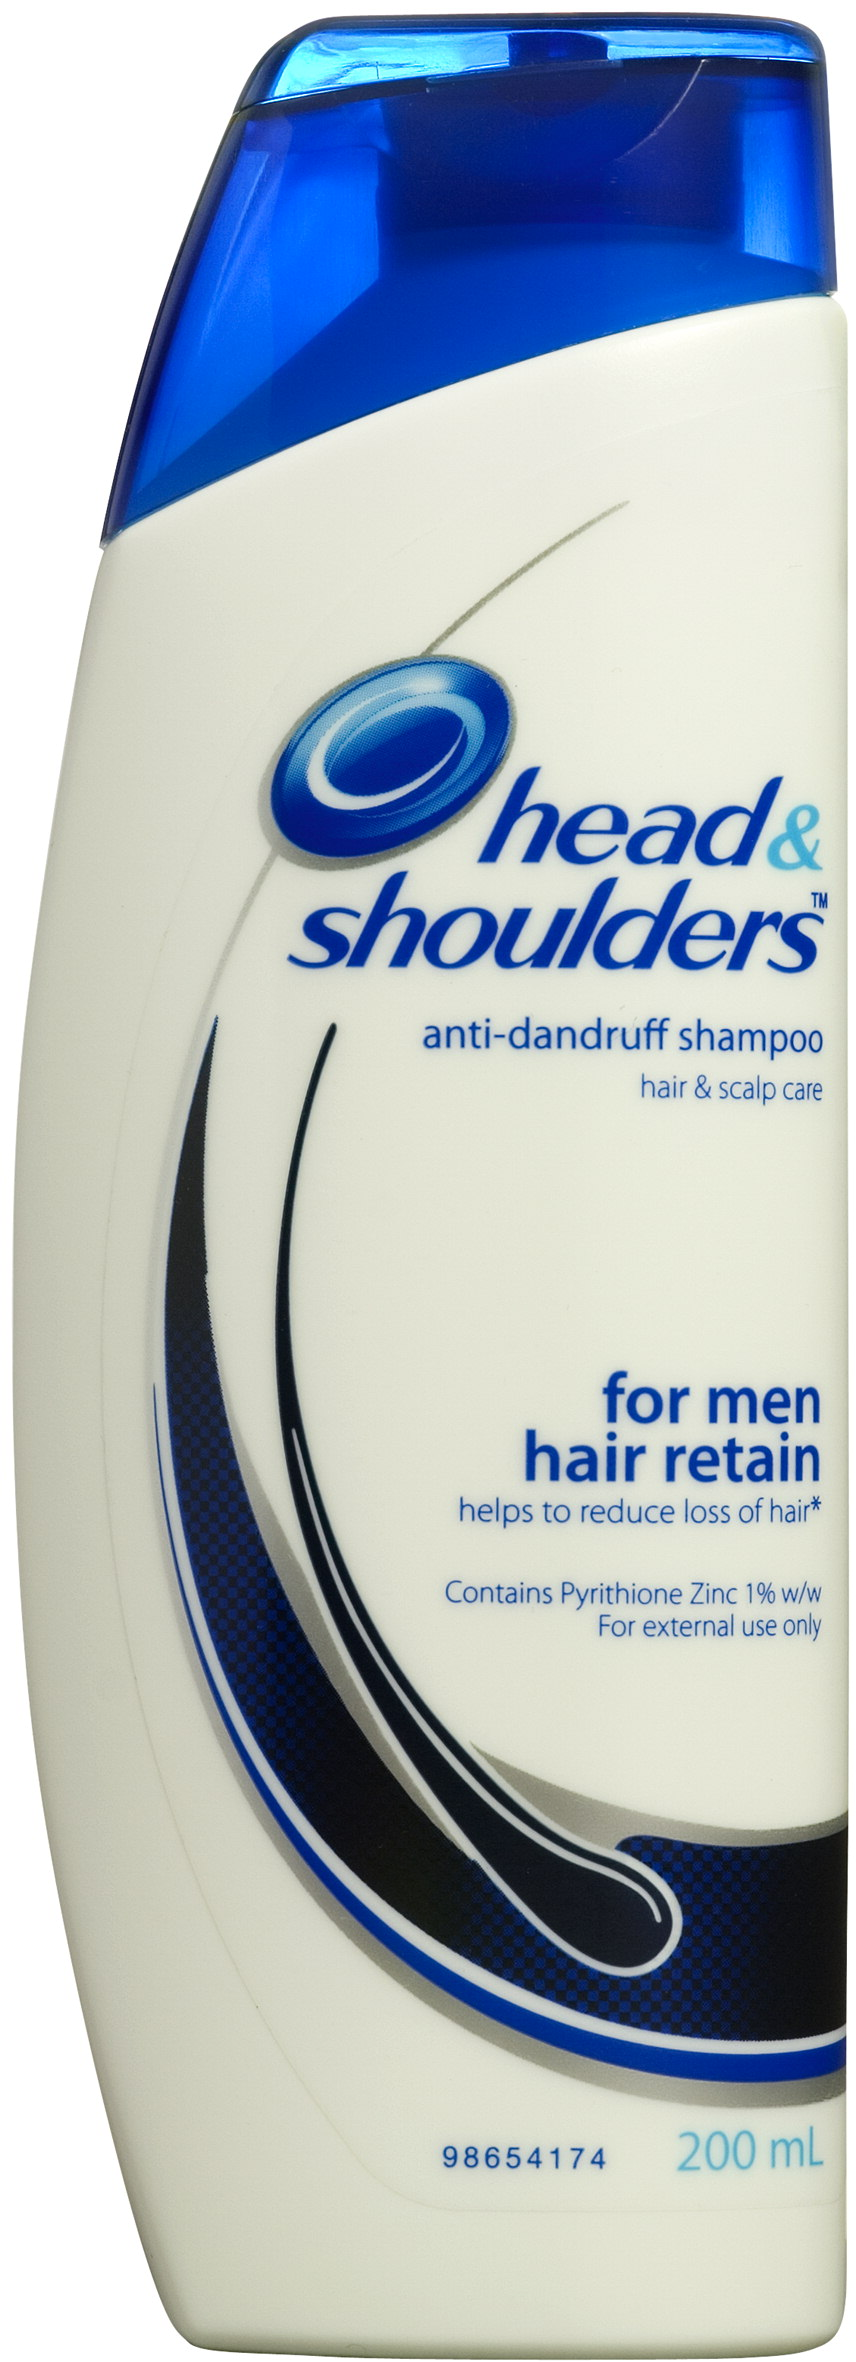 head & shoulders For Men Hair Retain Shampoo 200mL.jpg